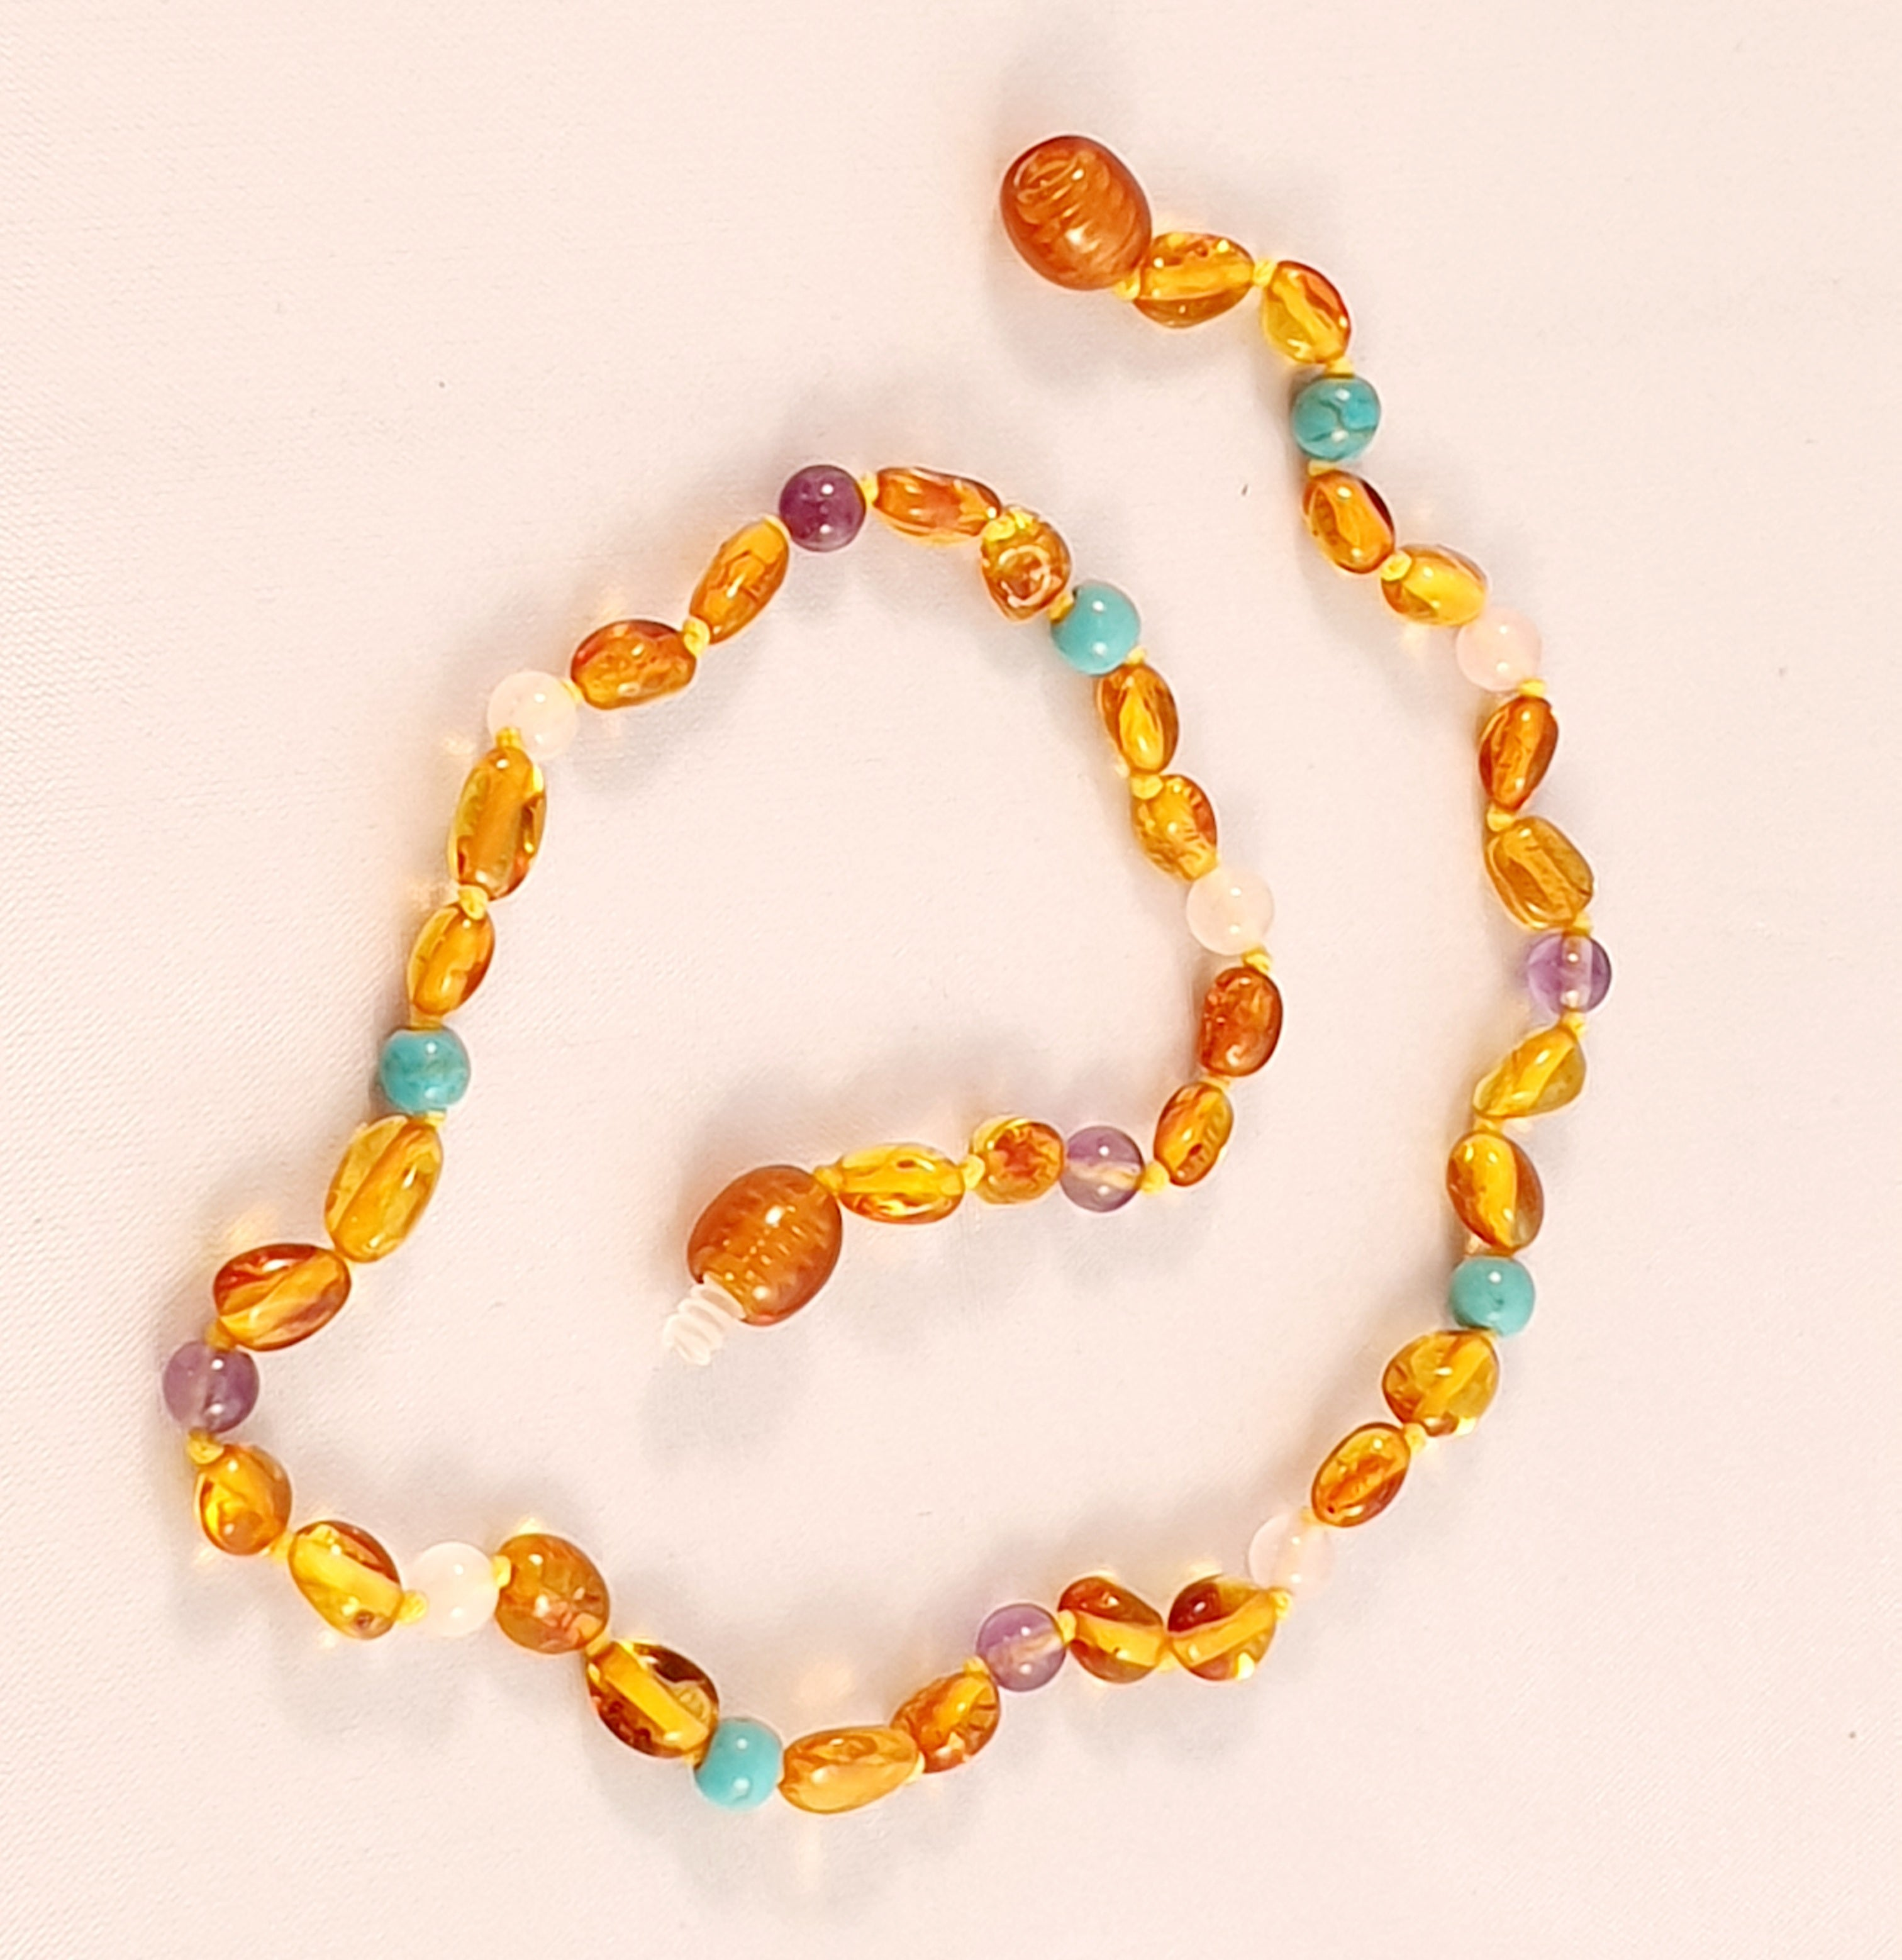 Baltic Ligh Cognac Amber with Blue Turquoise, Purple Amethyst and Pink Quartz - The Beaded Bub